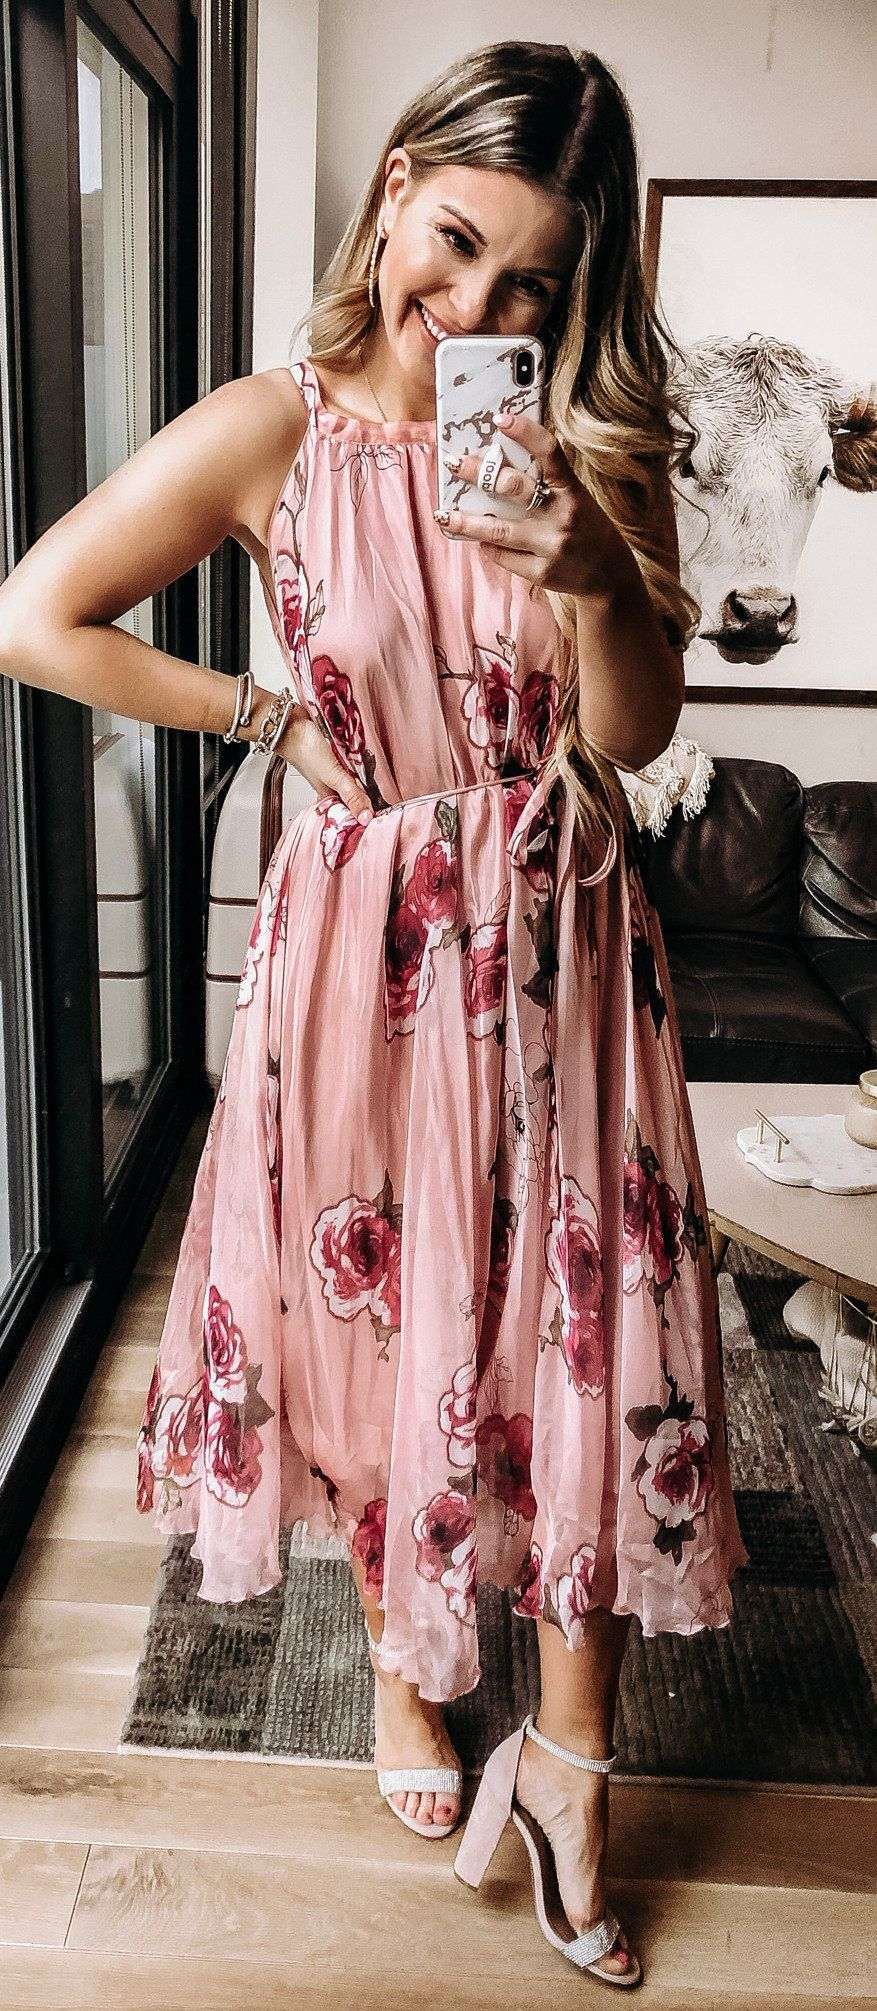 pink floral sleeveless dress #spring #outfits